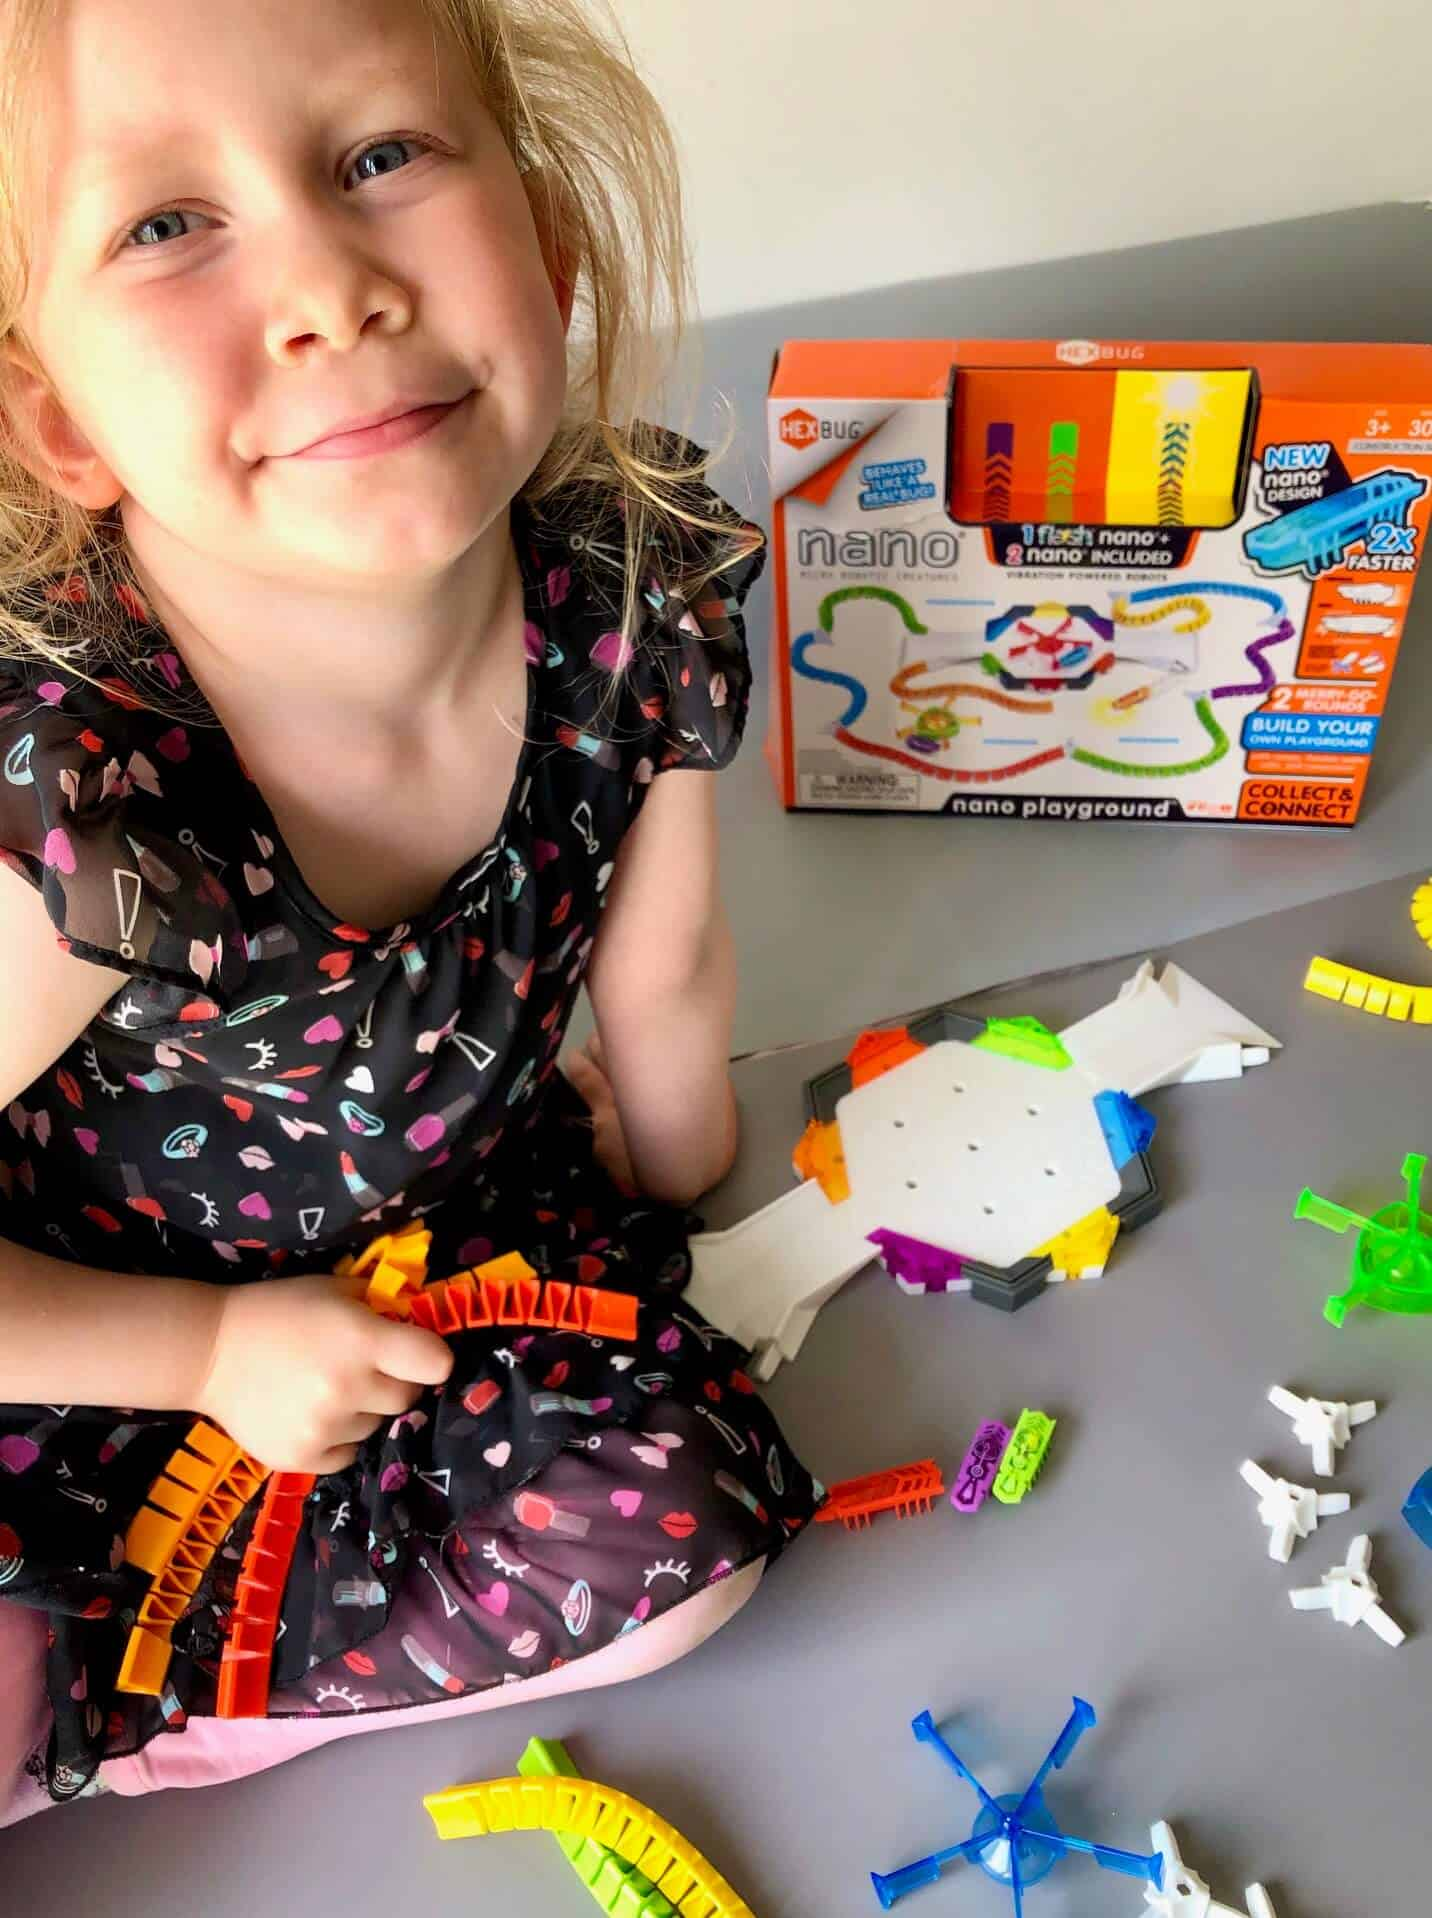 L with her HEXBUG nano Flash Playground Set